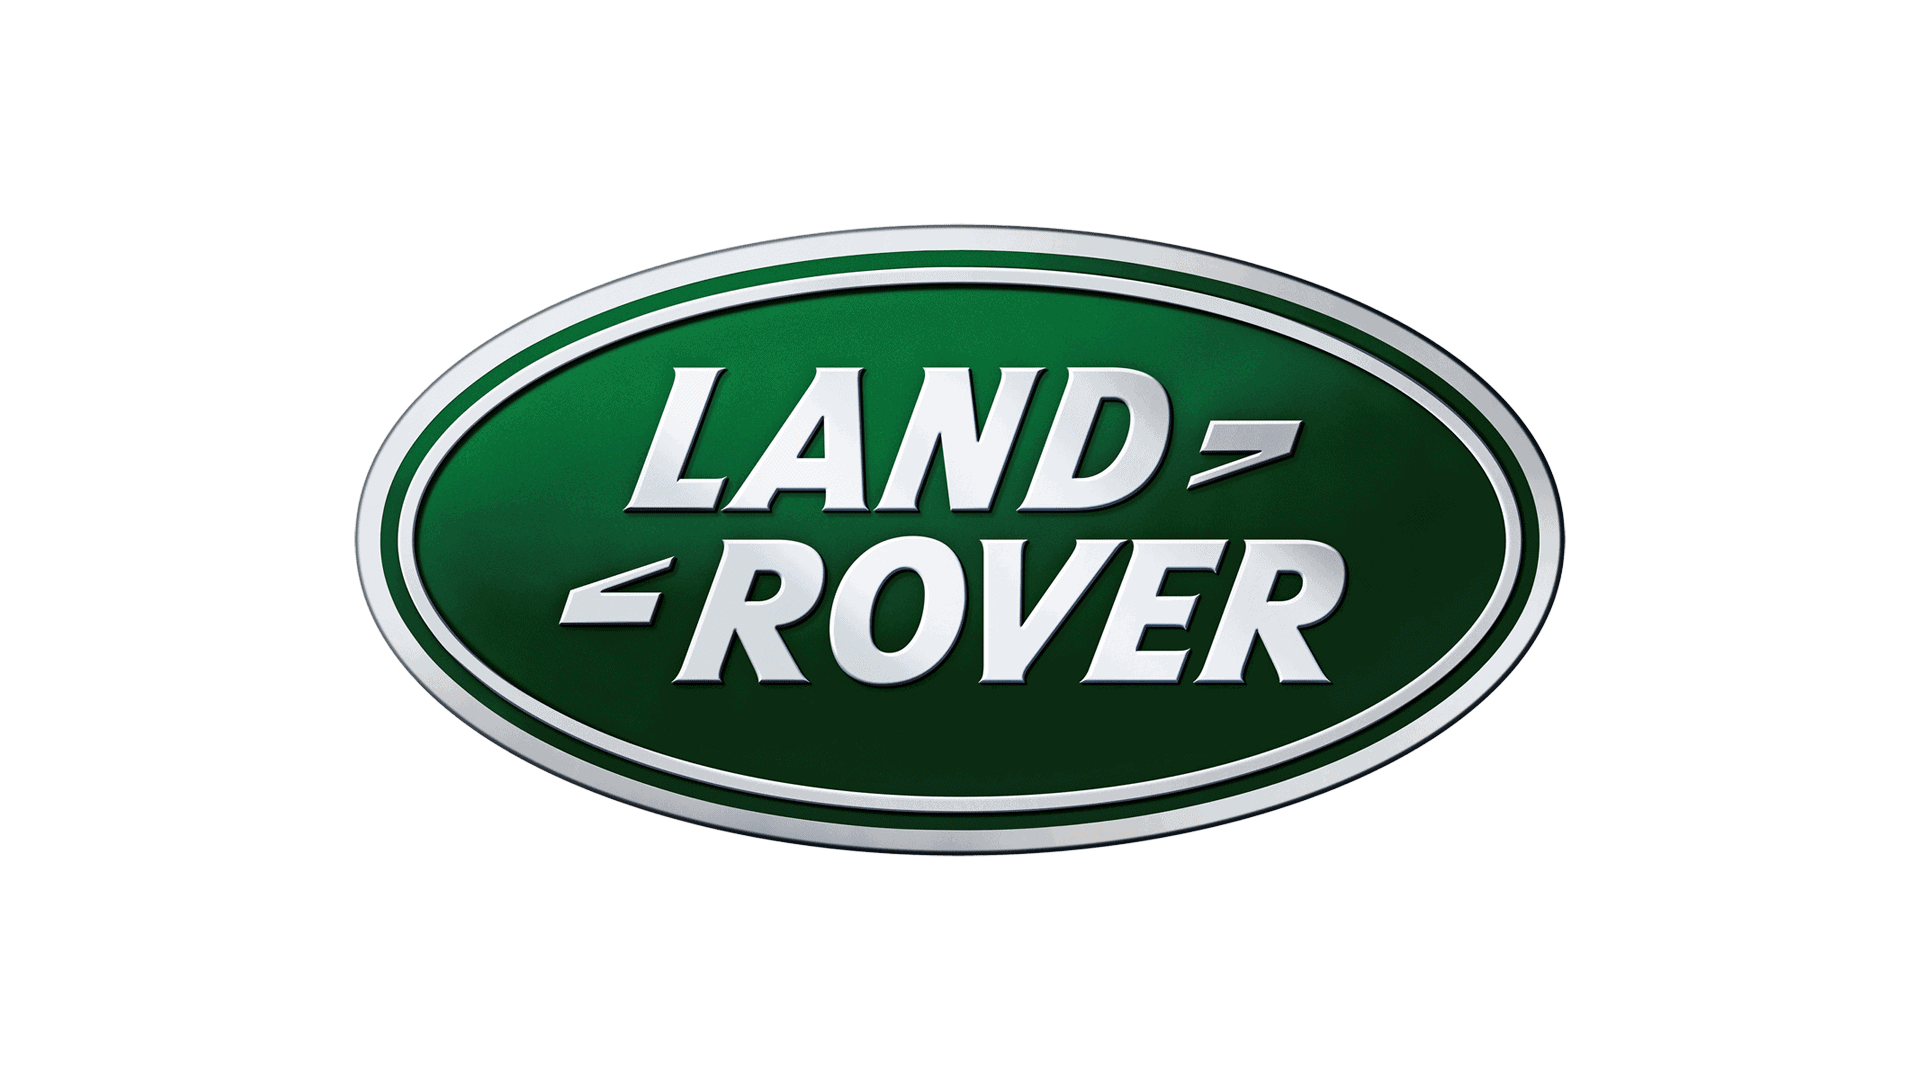 Review opdrachtgever Bconnect Land Rover